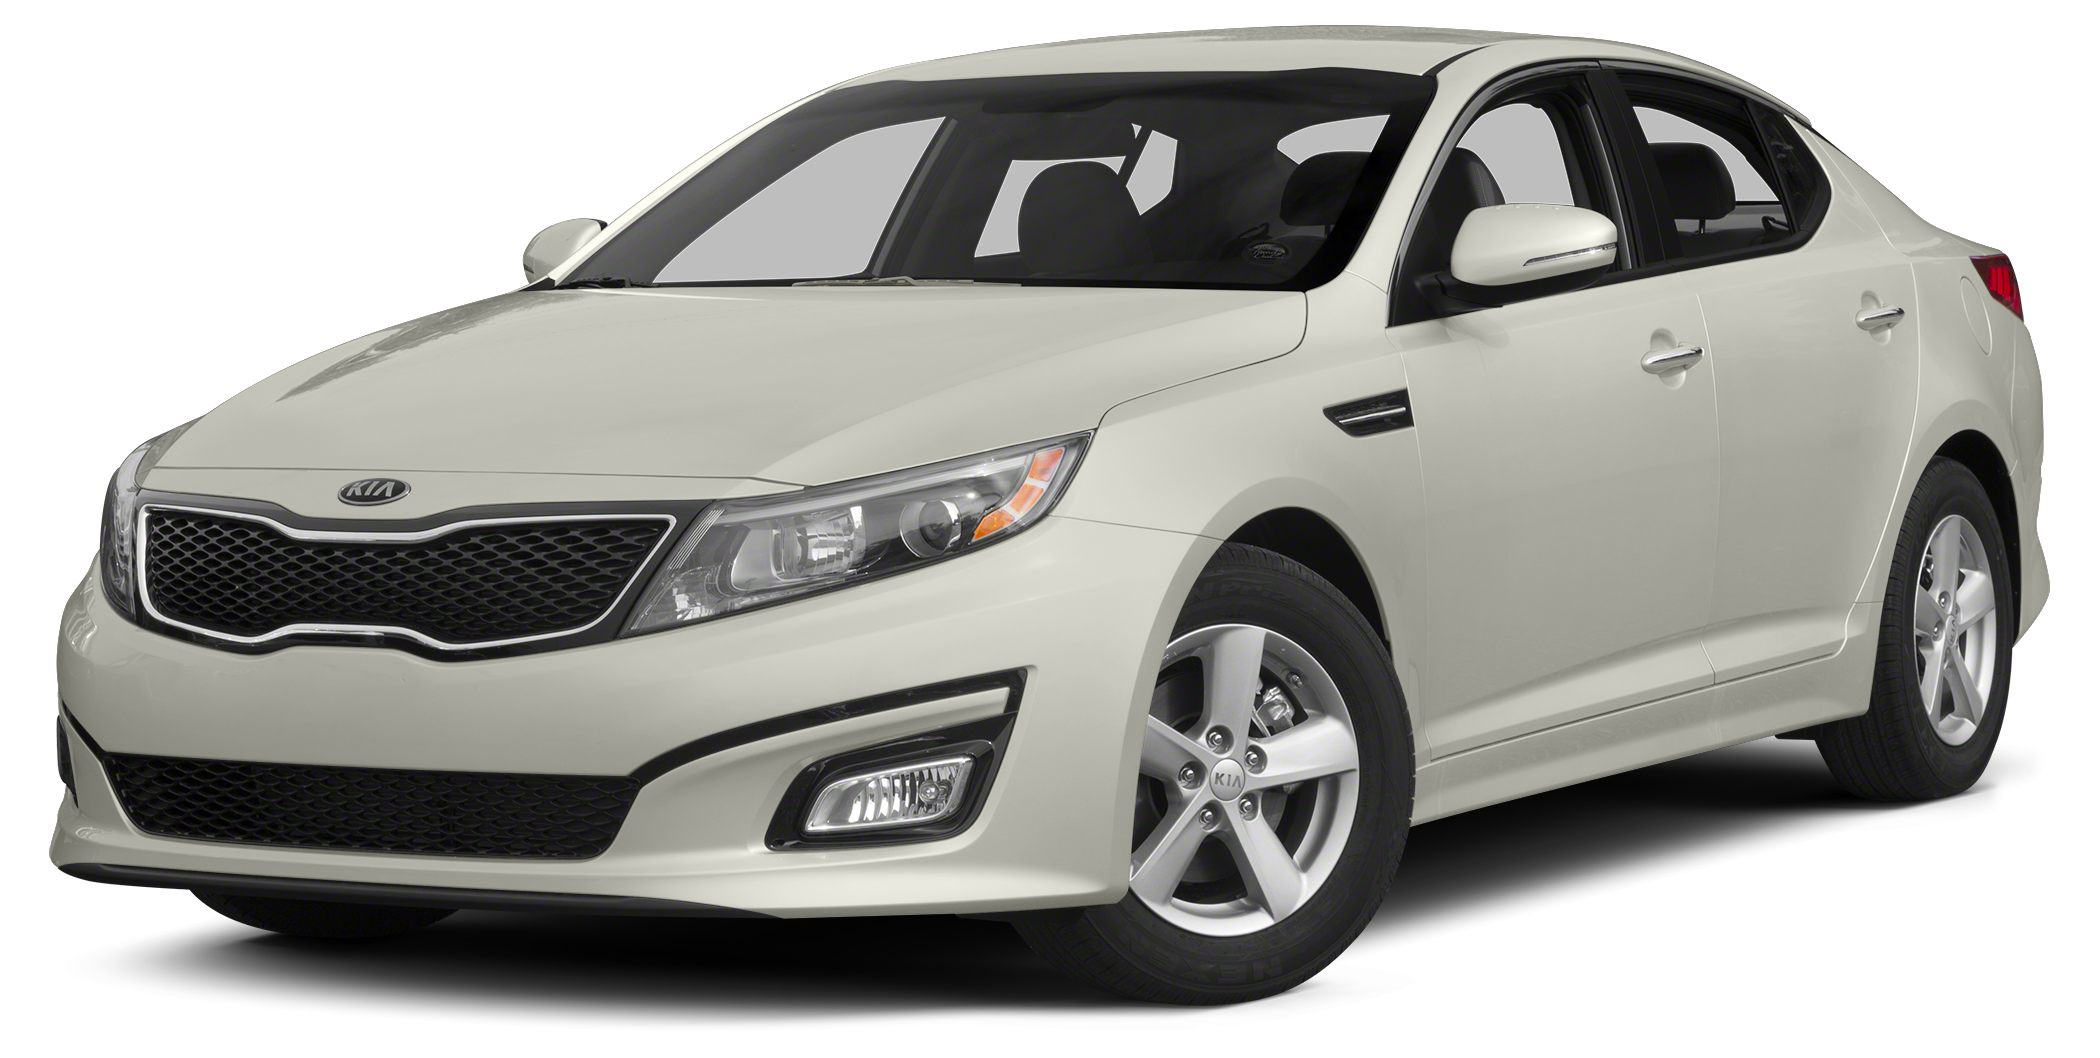 2015 Kia Optima LX Miles 22674Color Snow White Pearl Stock UC2106 VIN 5XXGM4A73FG500201